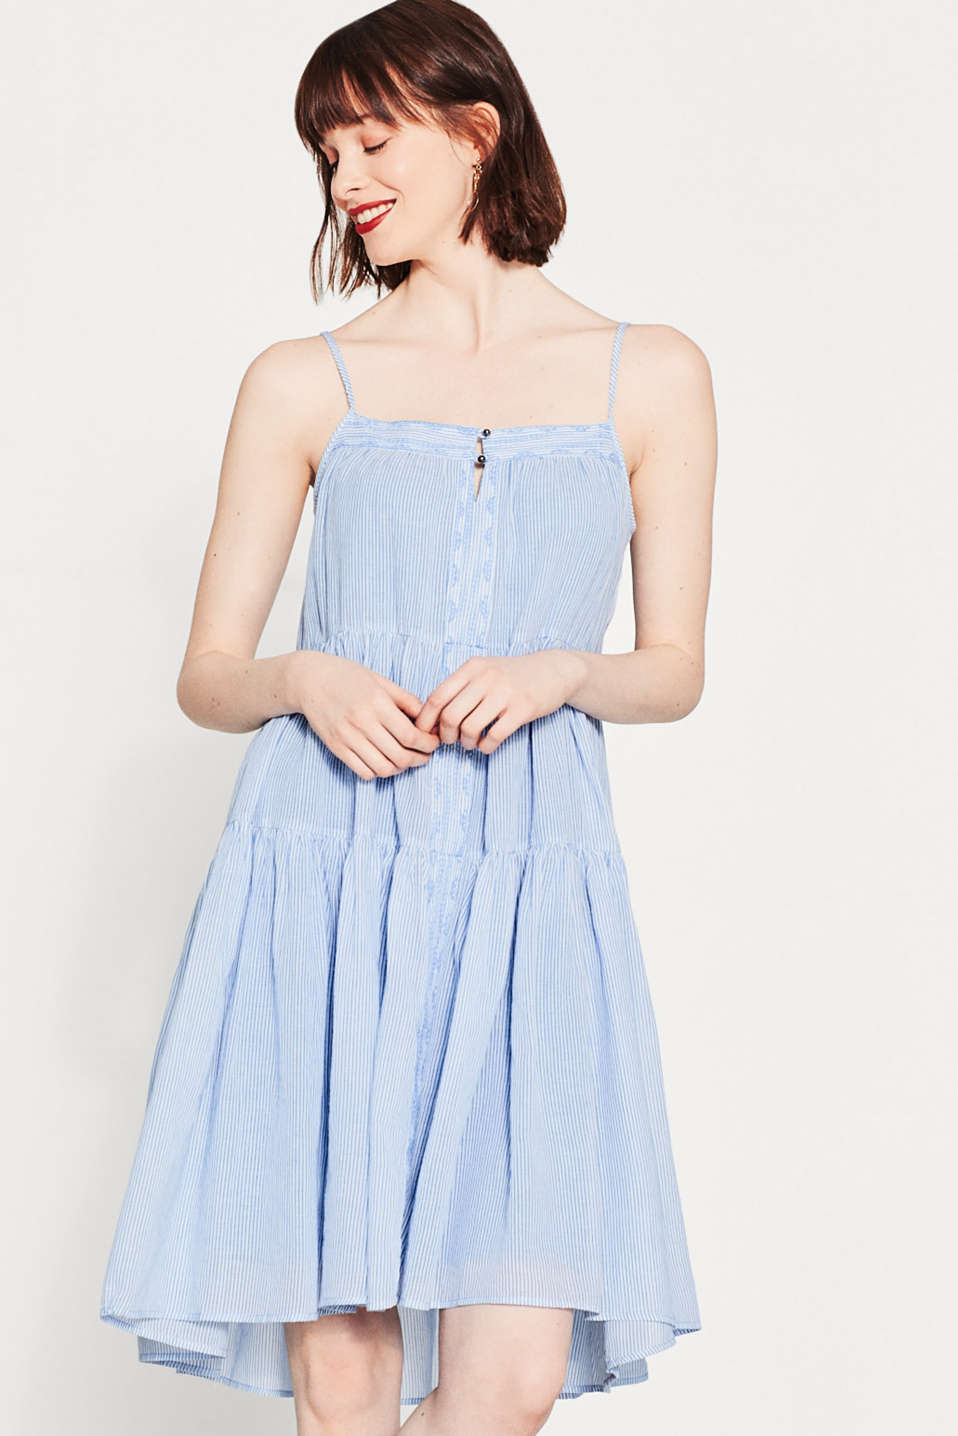 Floaty A-line dress in 100% cotton